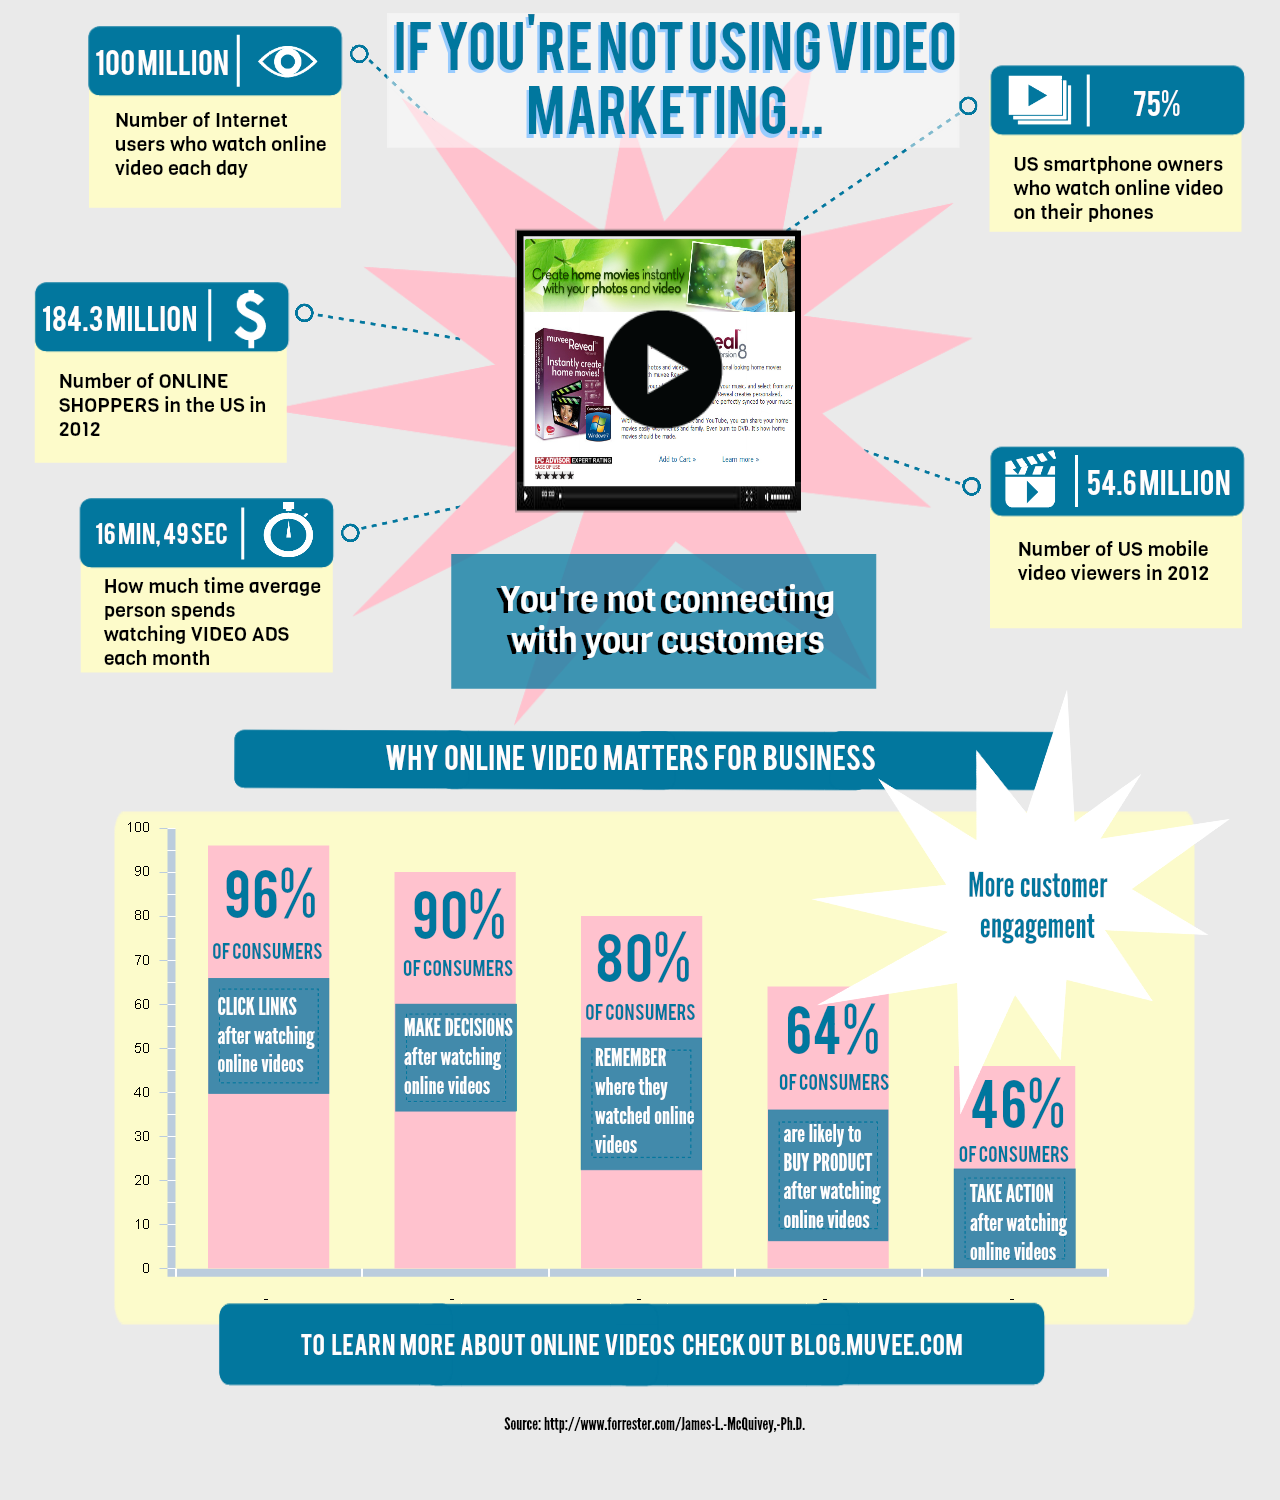 Why video marketing for business matters [muvee infographic]